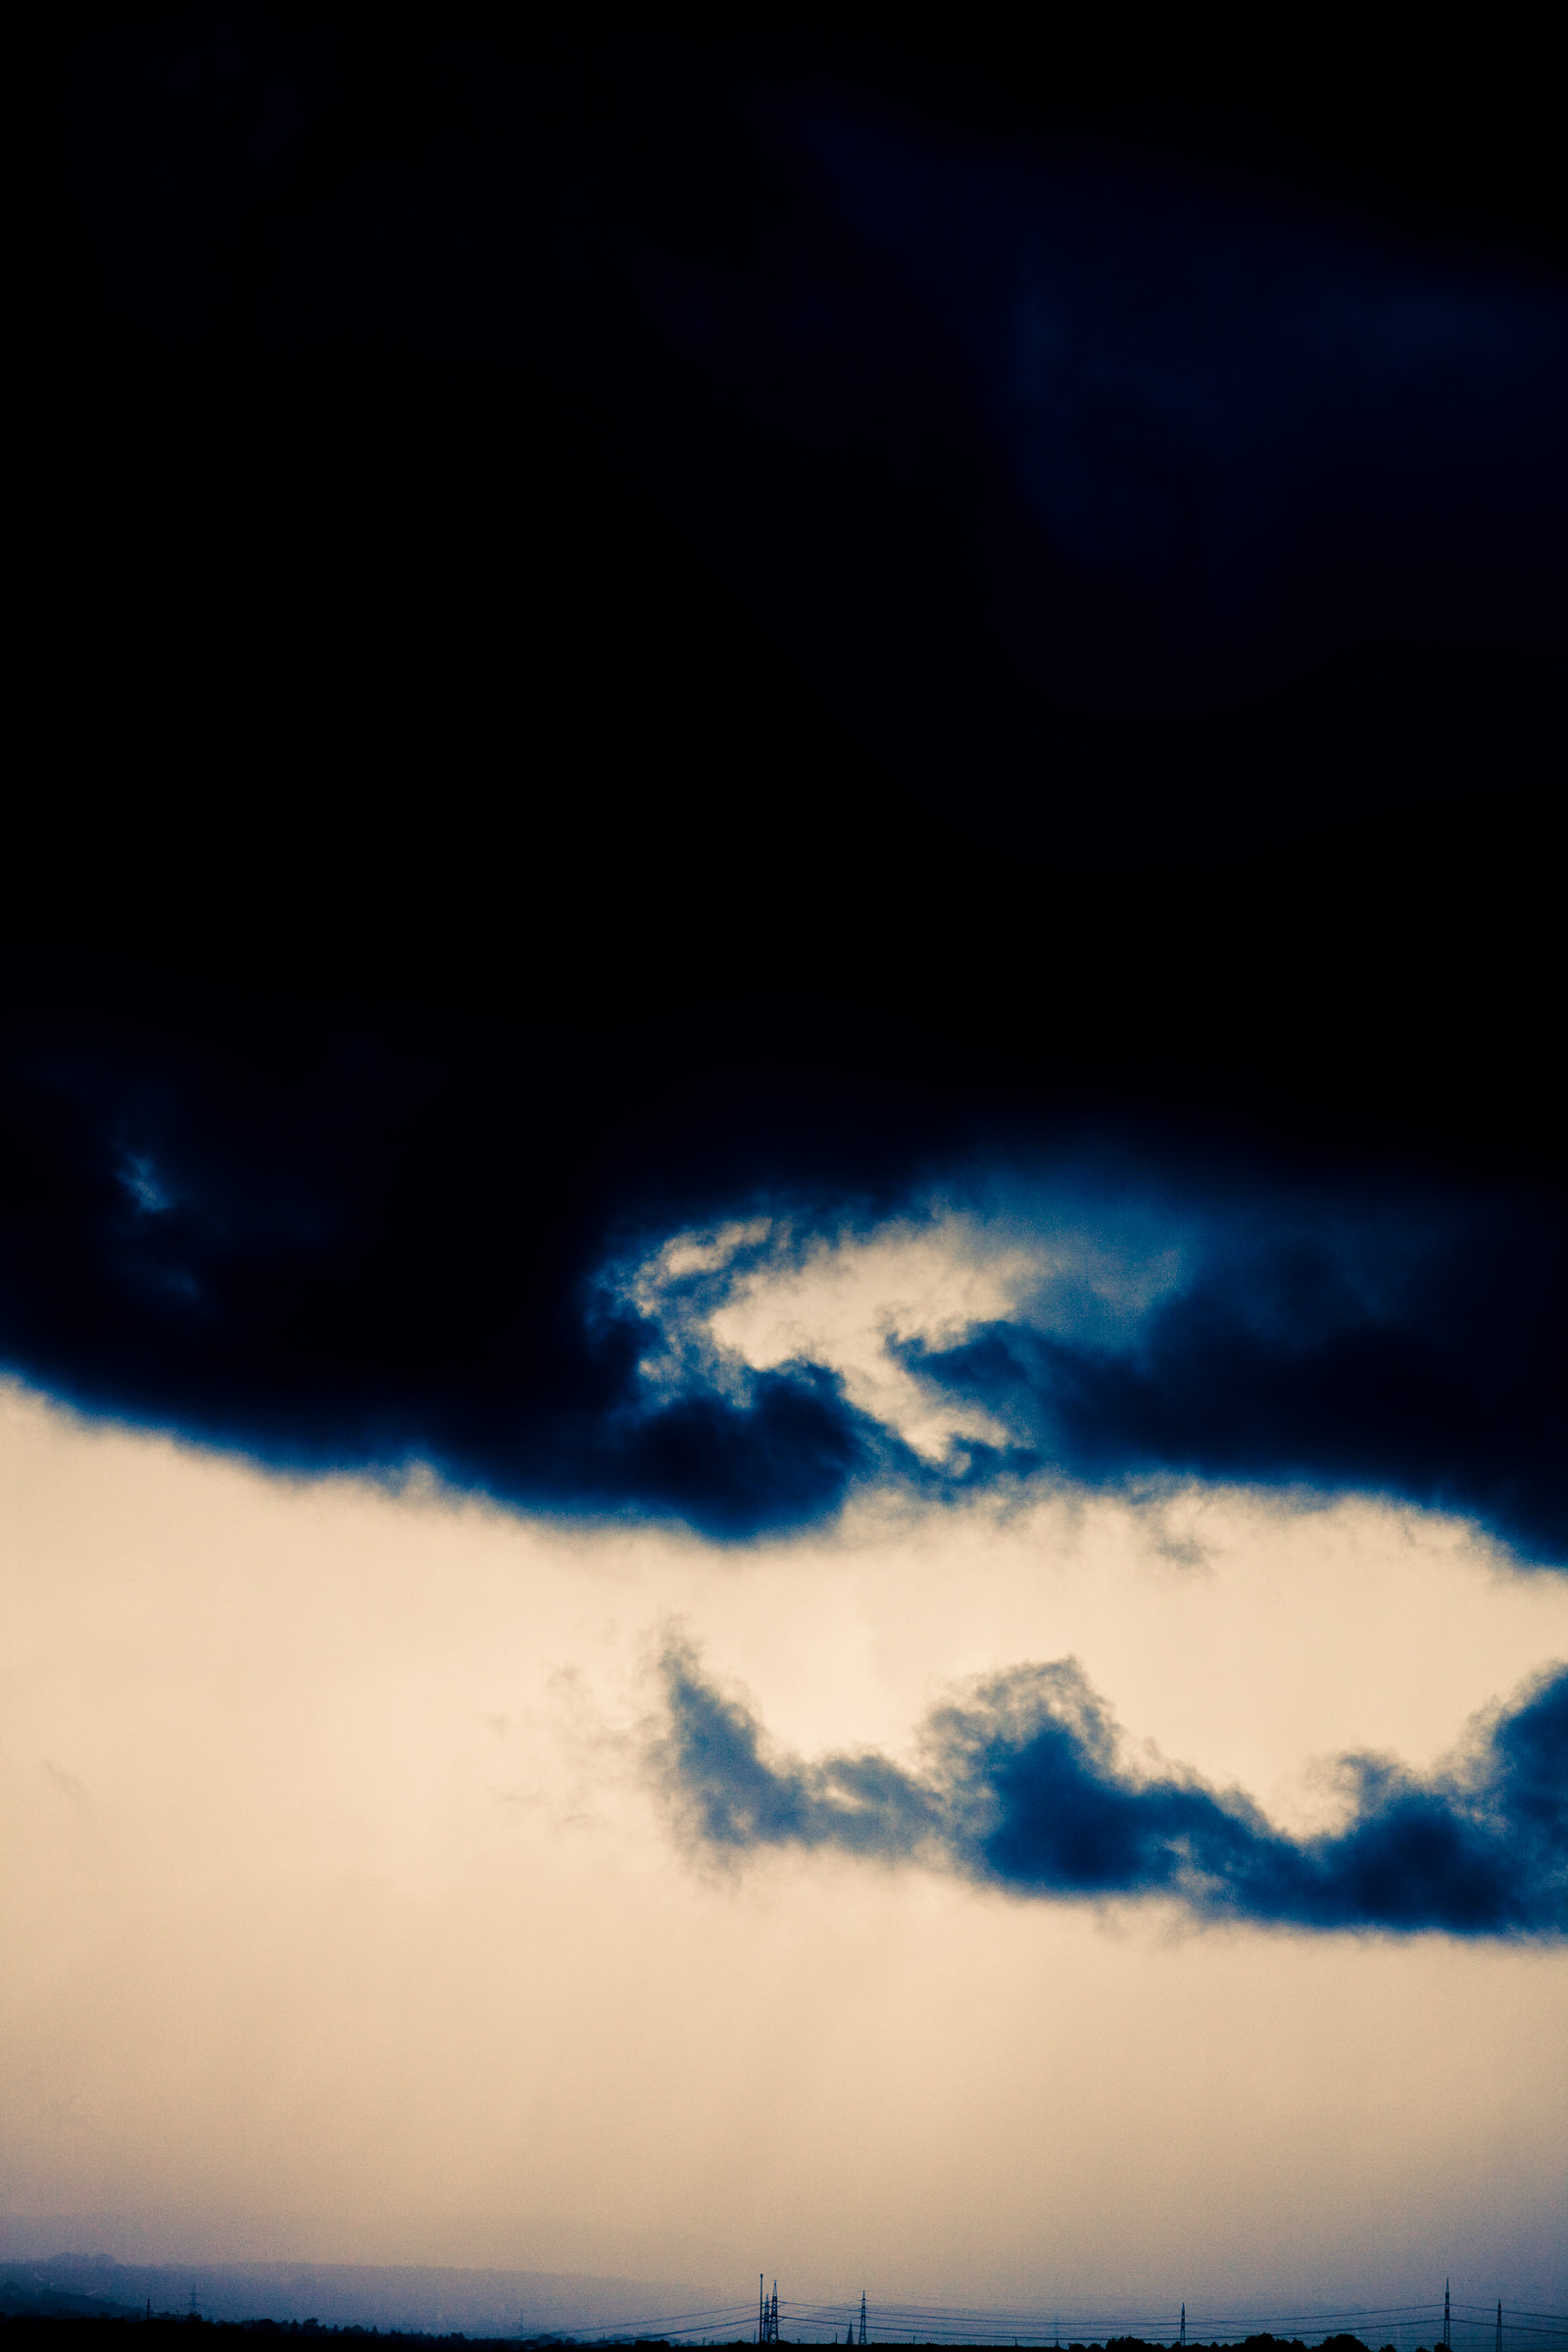 storm is coming 5